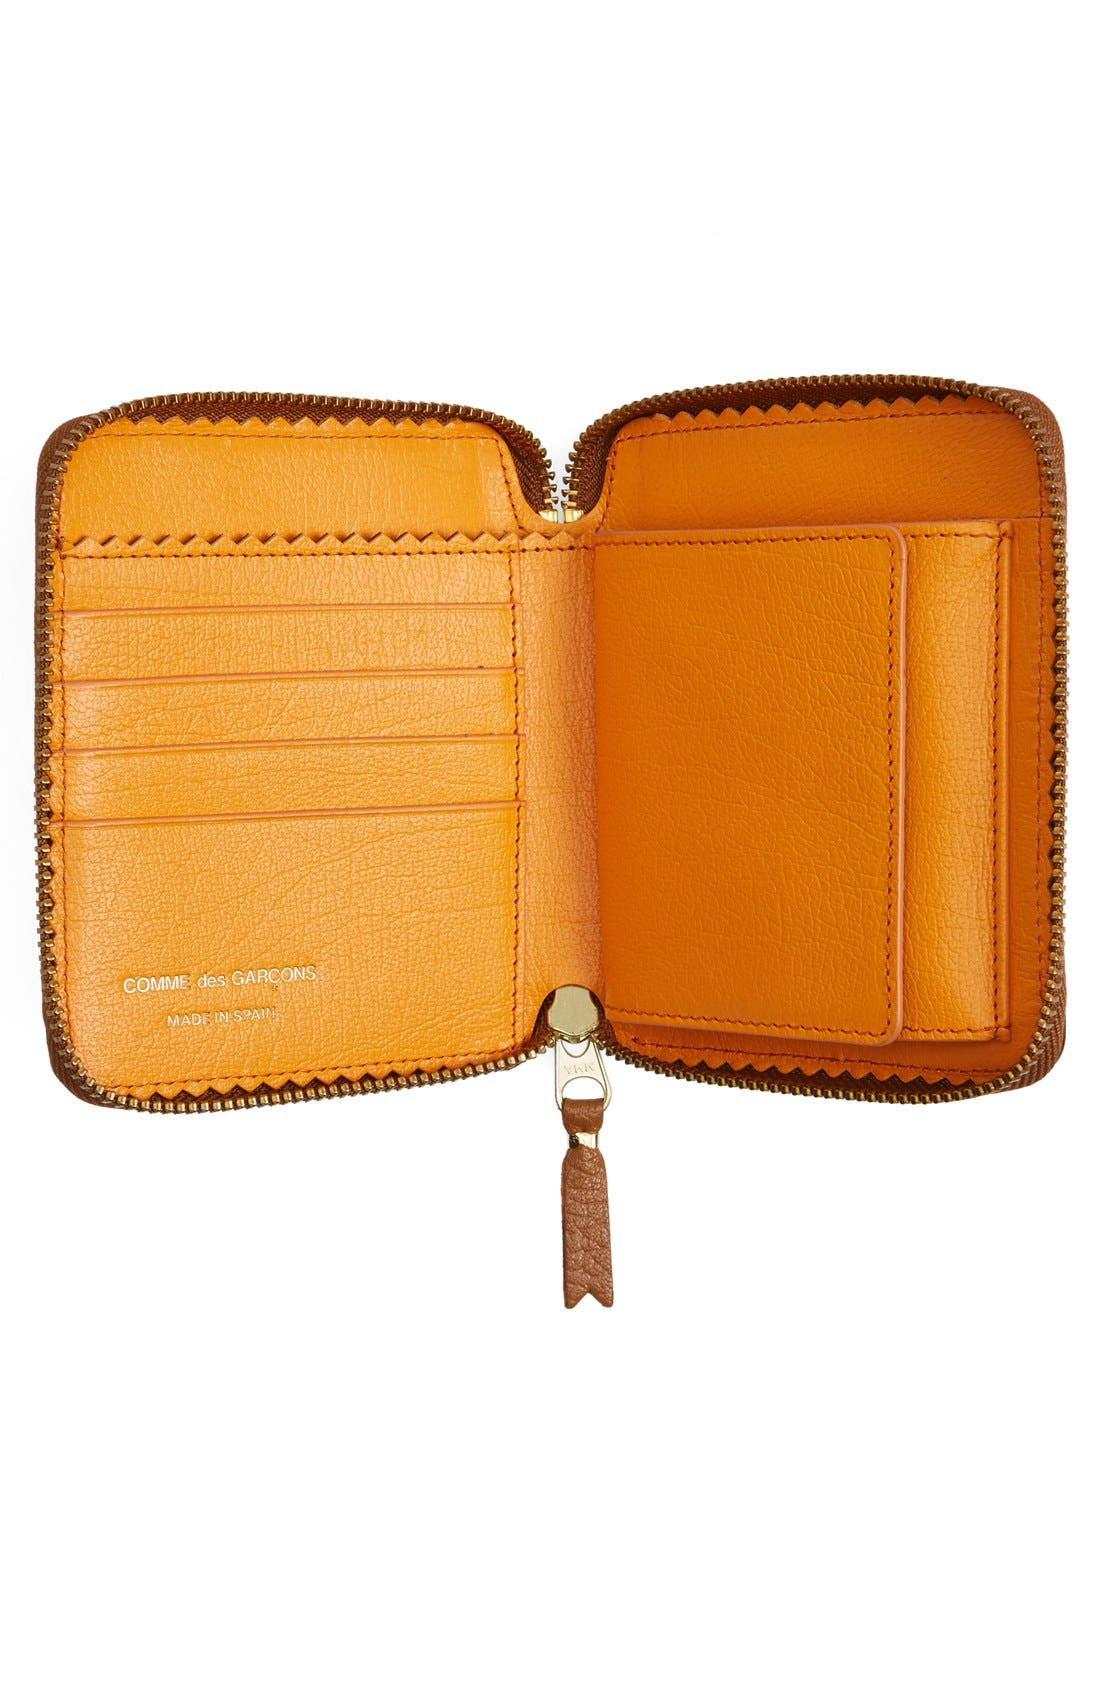 Leather Wallet,                             Alternate thumbnail 2, color,                             Brown/ Orange